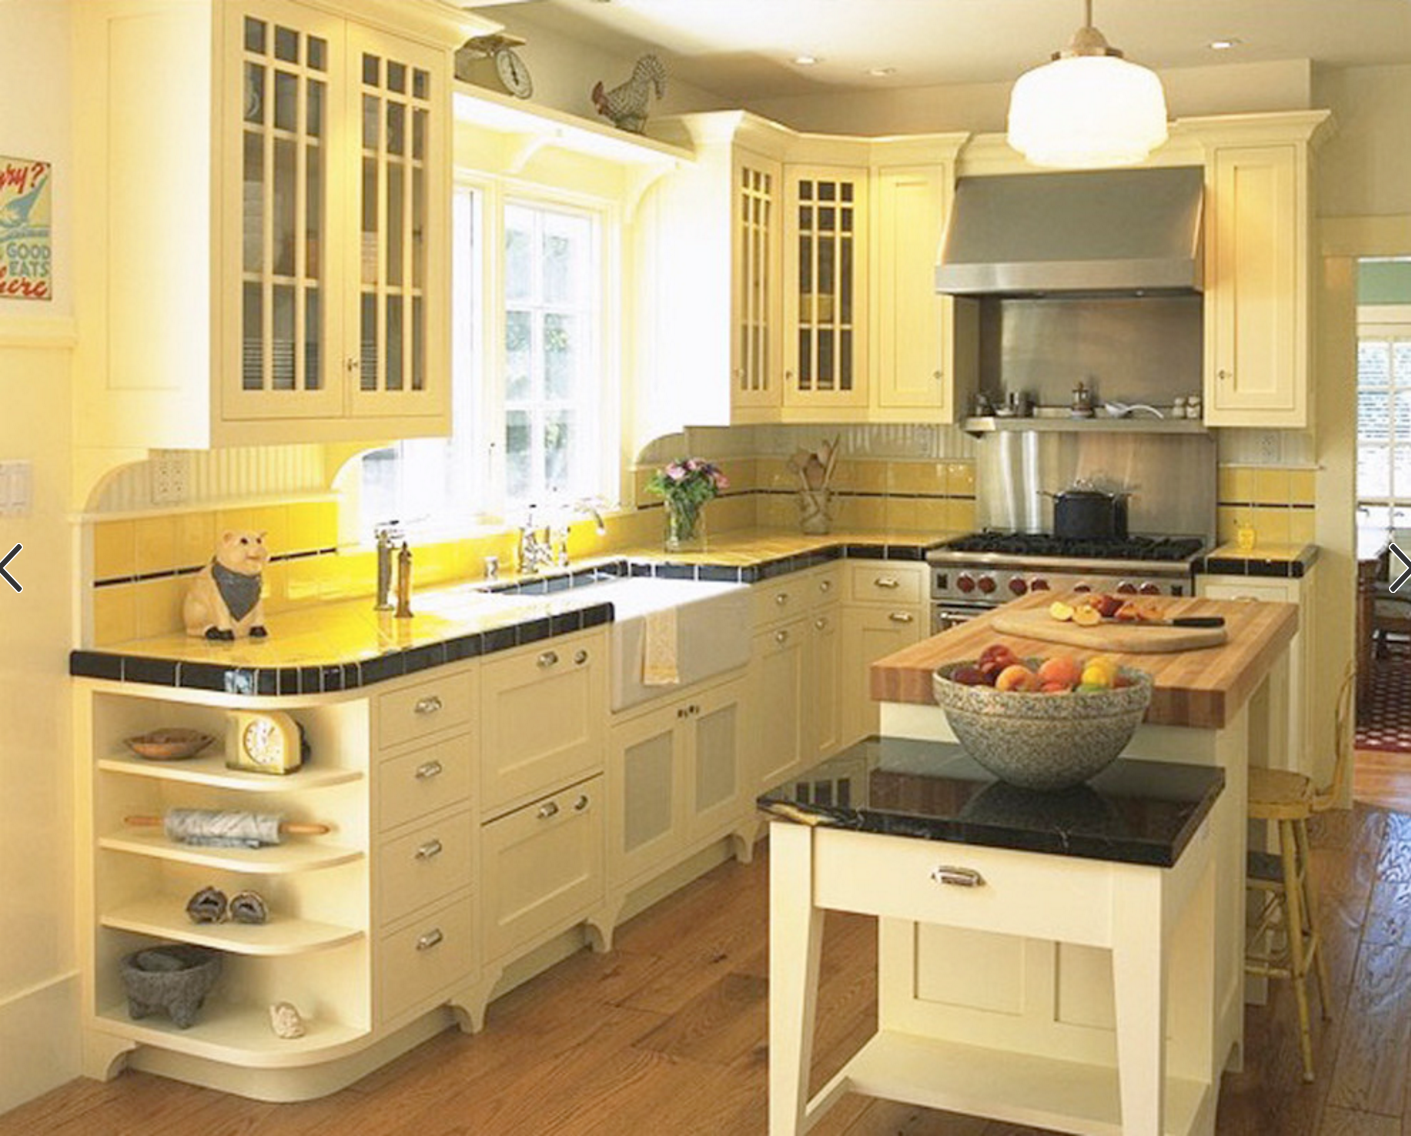 baking island, open shelving on end of cabinets, feet on ...